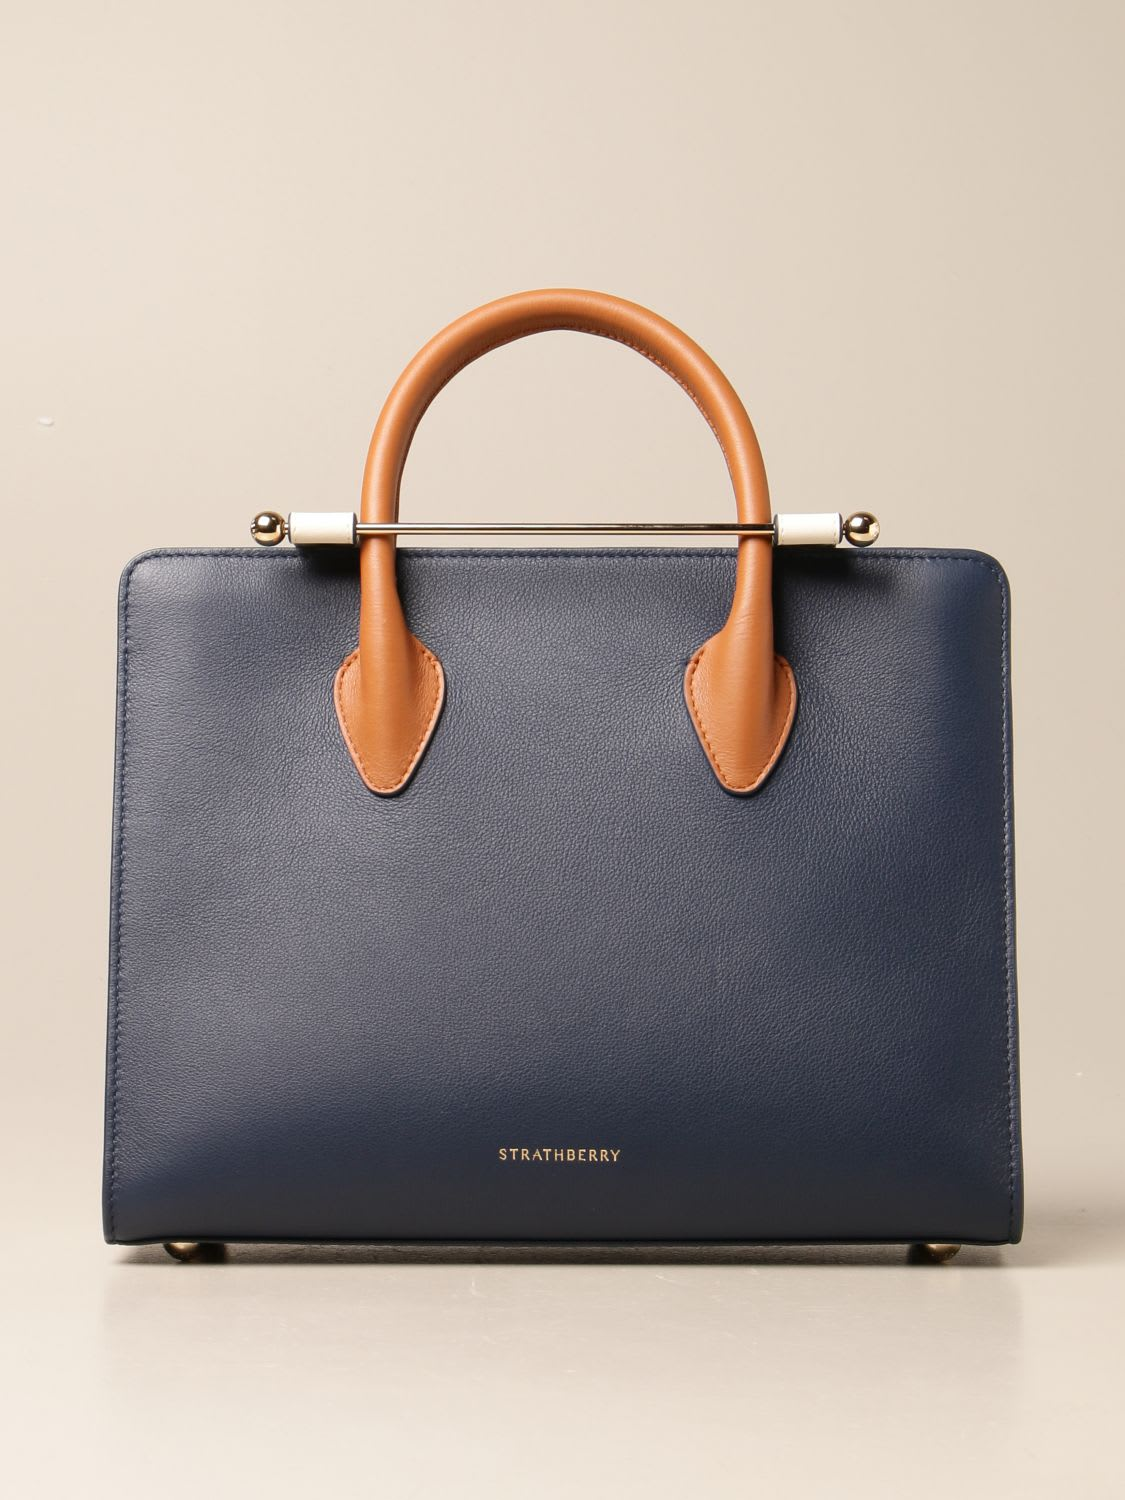 Strathberry Shoulder Bag Strathberry Midi Tote Bag In Tricolor Leather